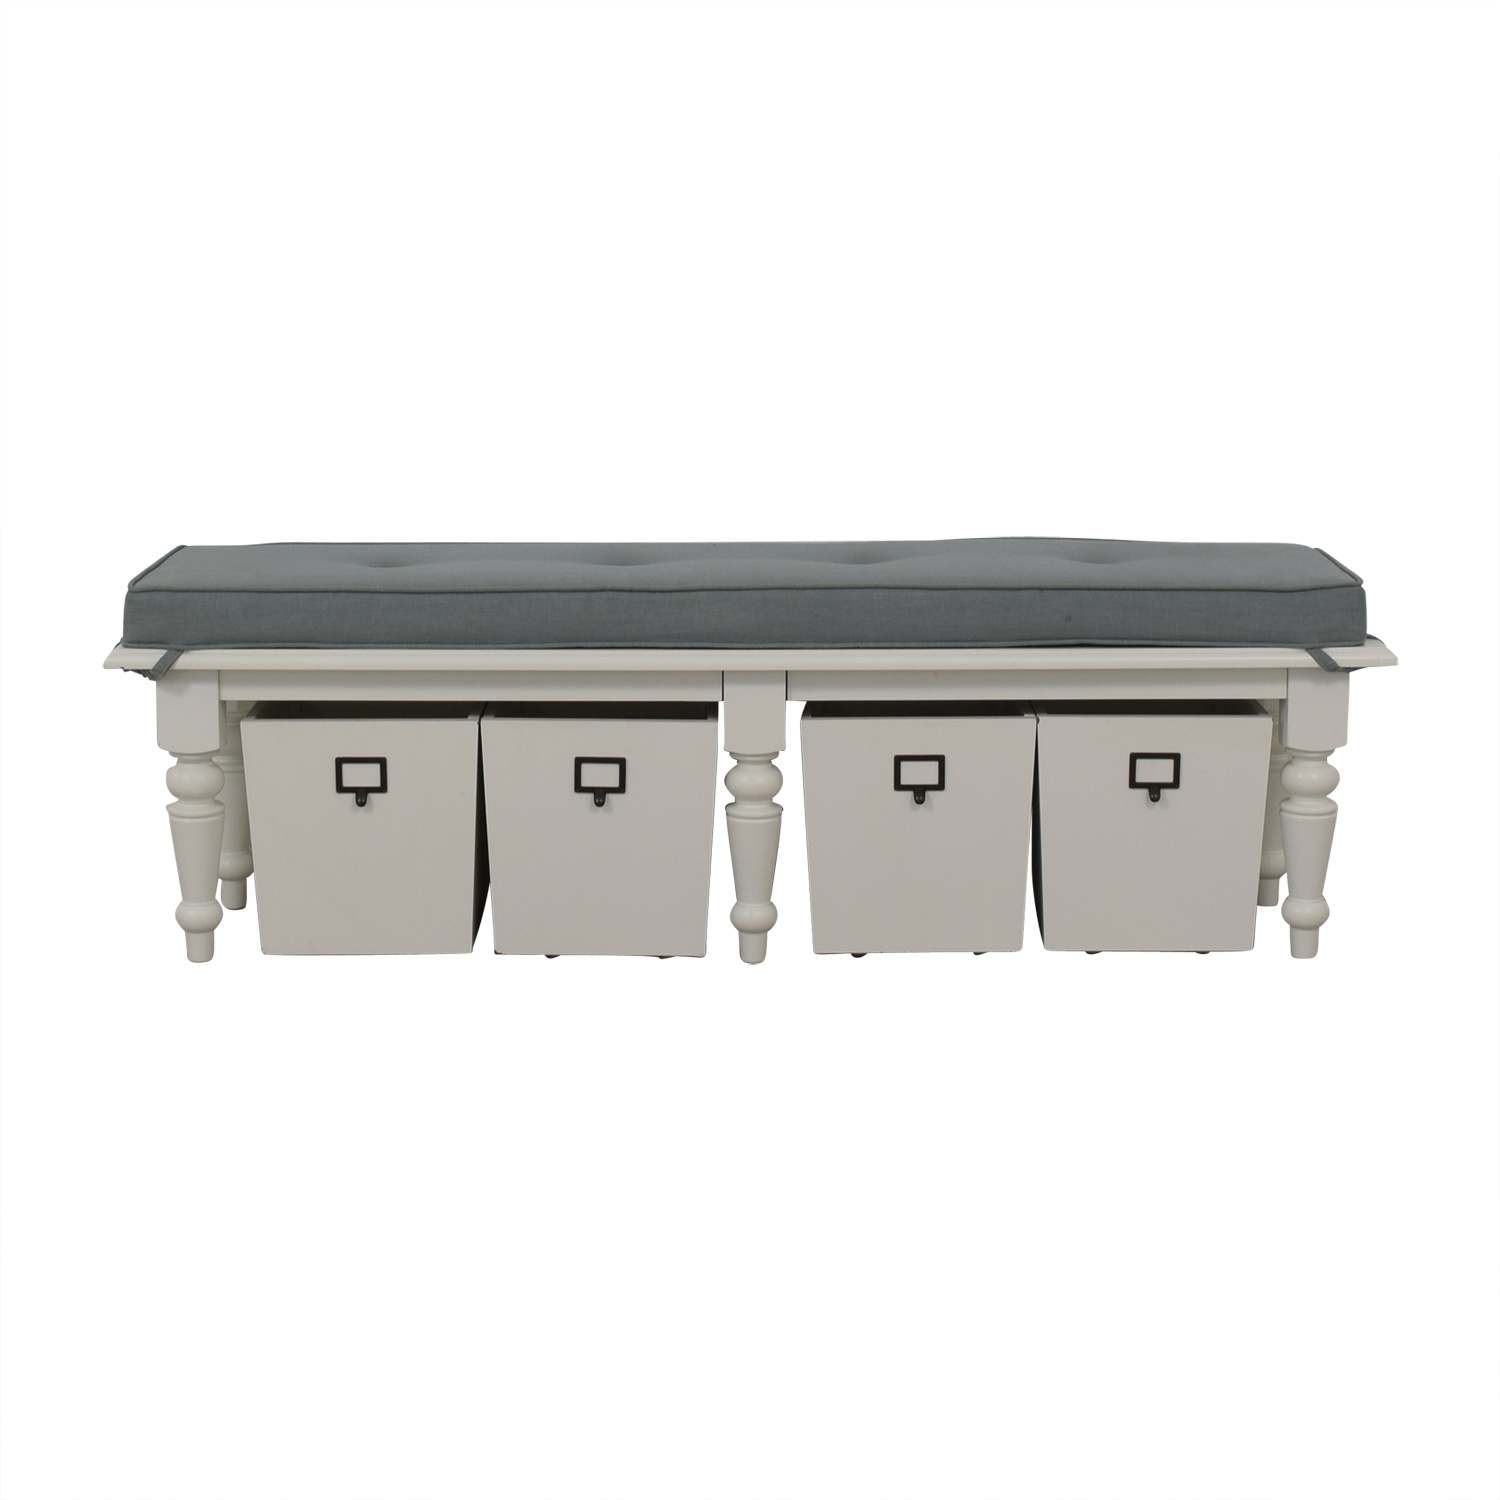 buy Home Goods Grey Upholstered and White Bench with Four Storage Boxes Home Goods Chairs